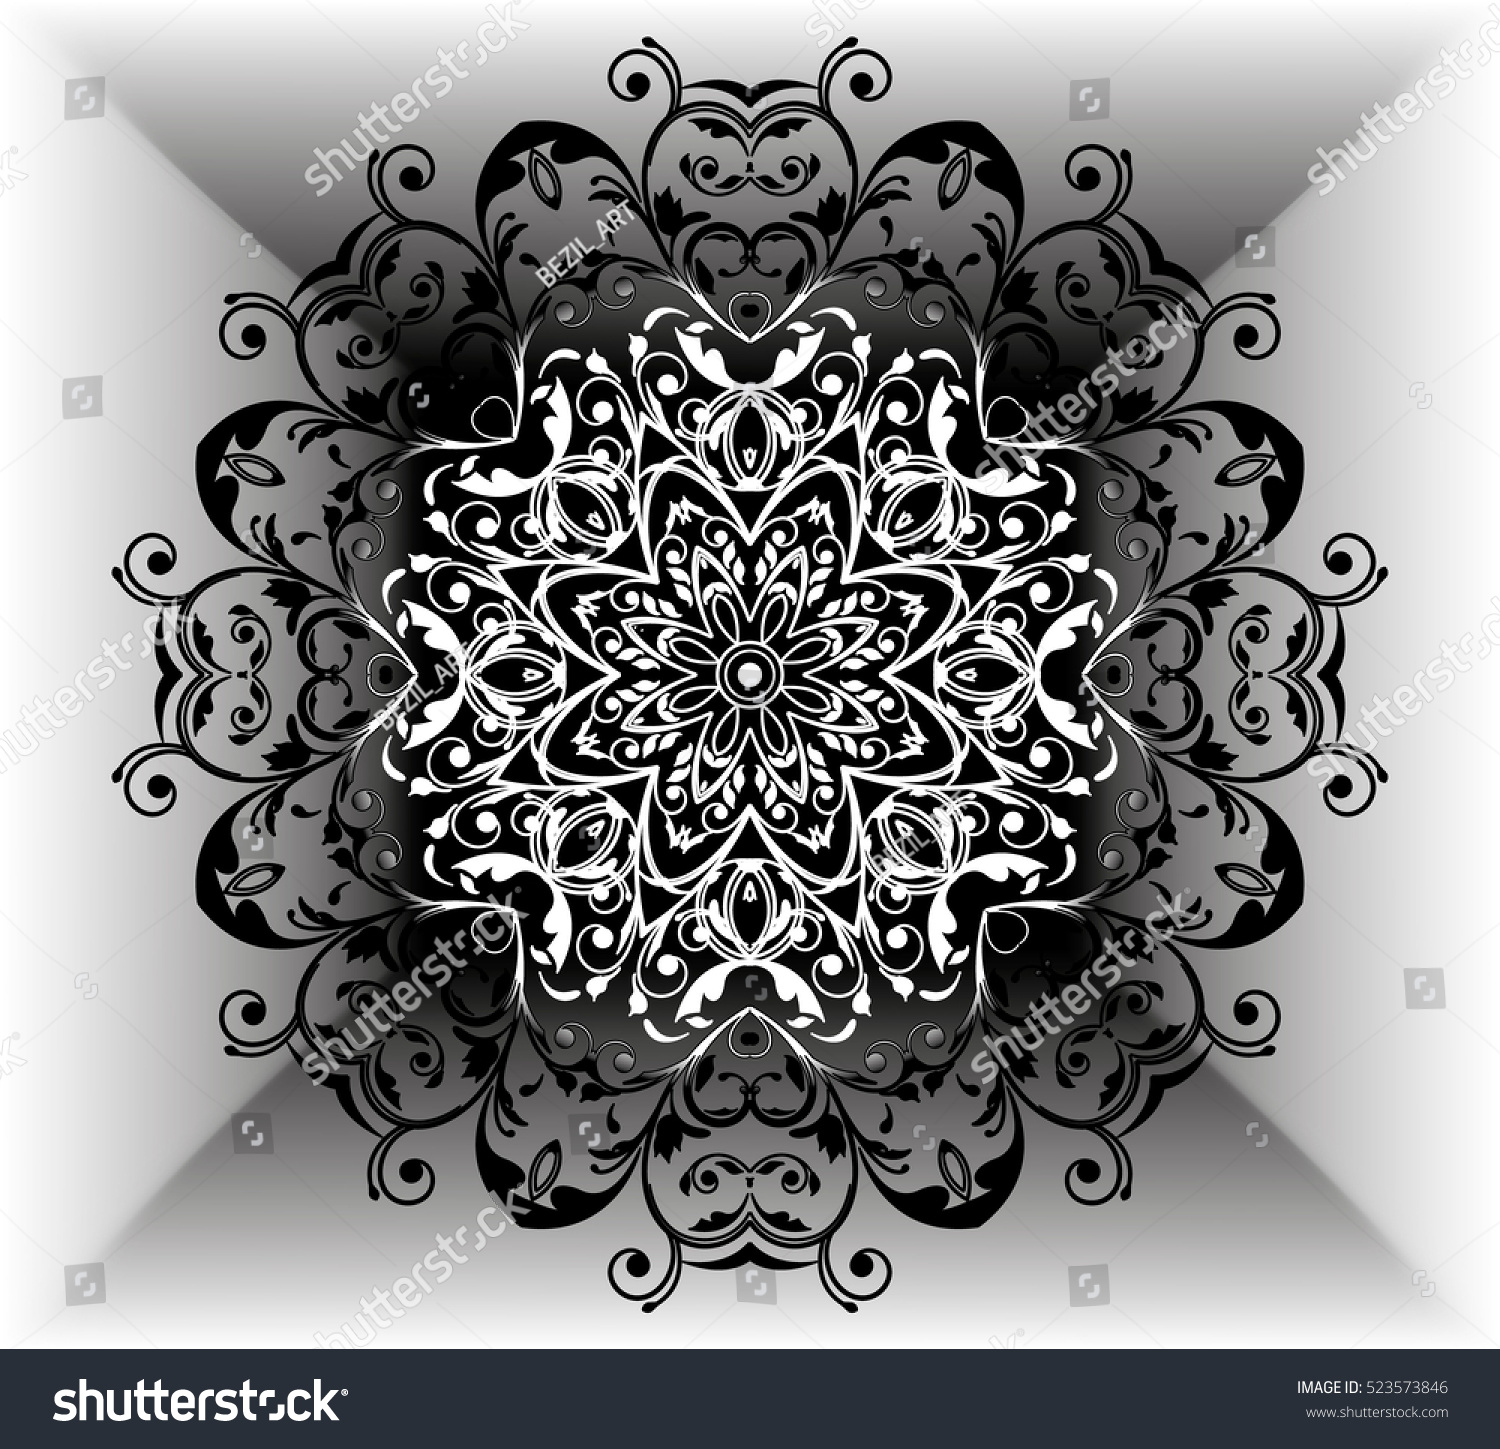 mandala motif flower pattern black white stock vector 523573846 shutterstock. Black Bedroom Furniture Sets. Home Design Ideas